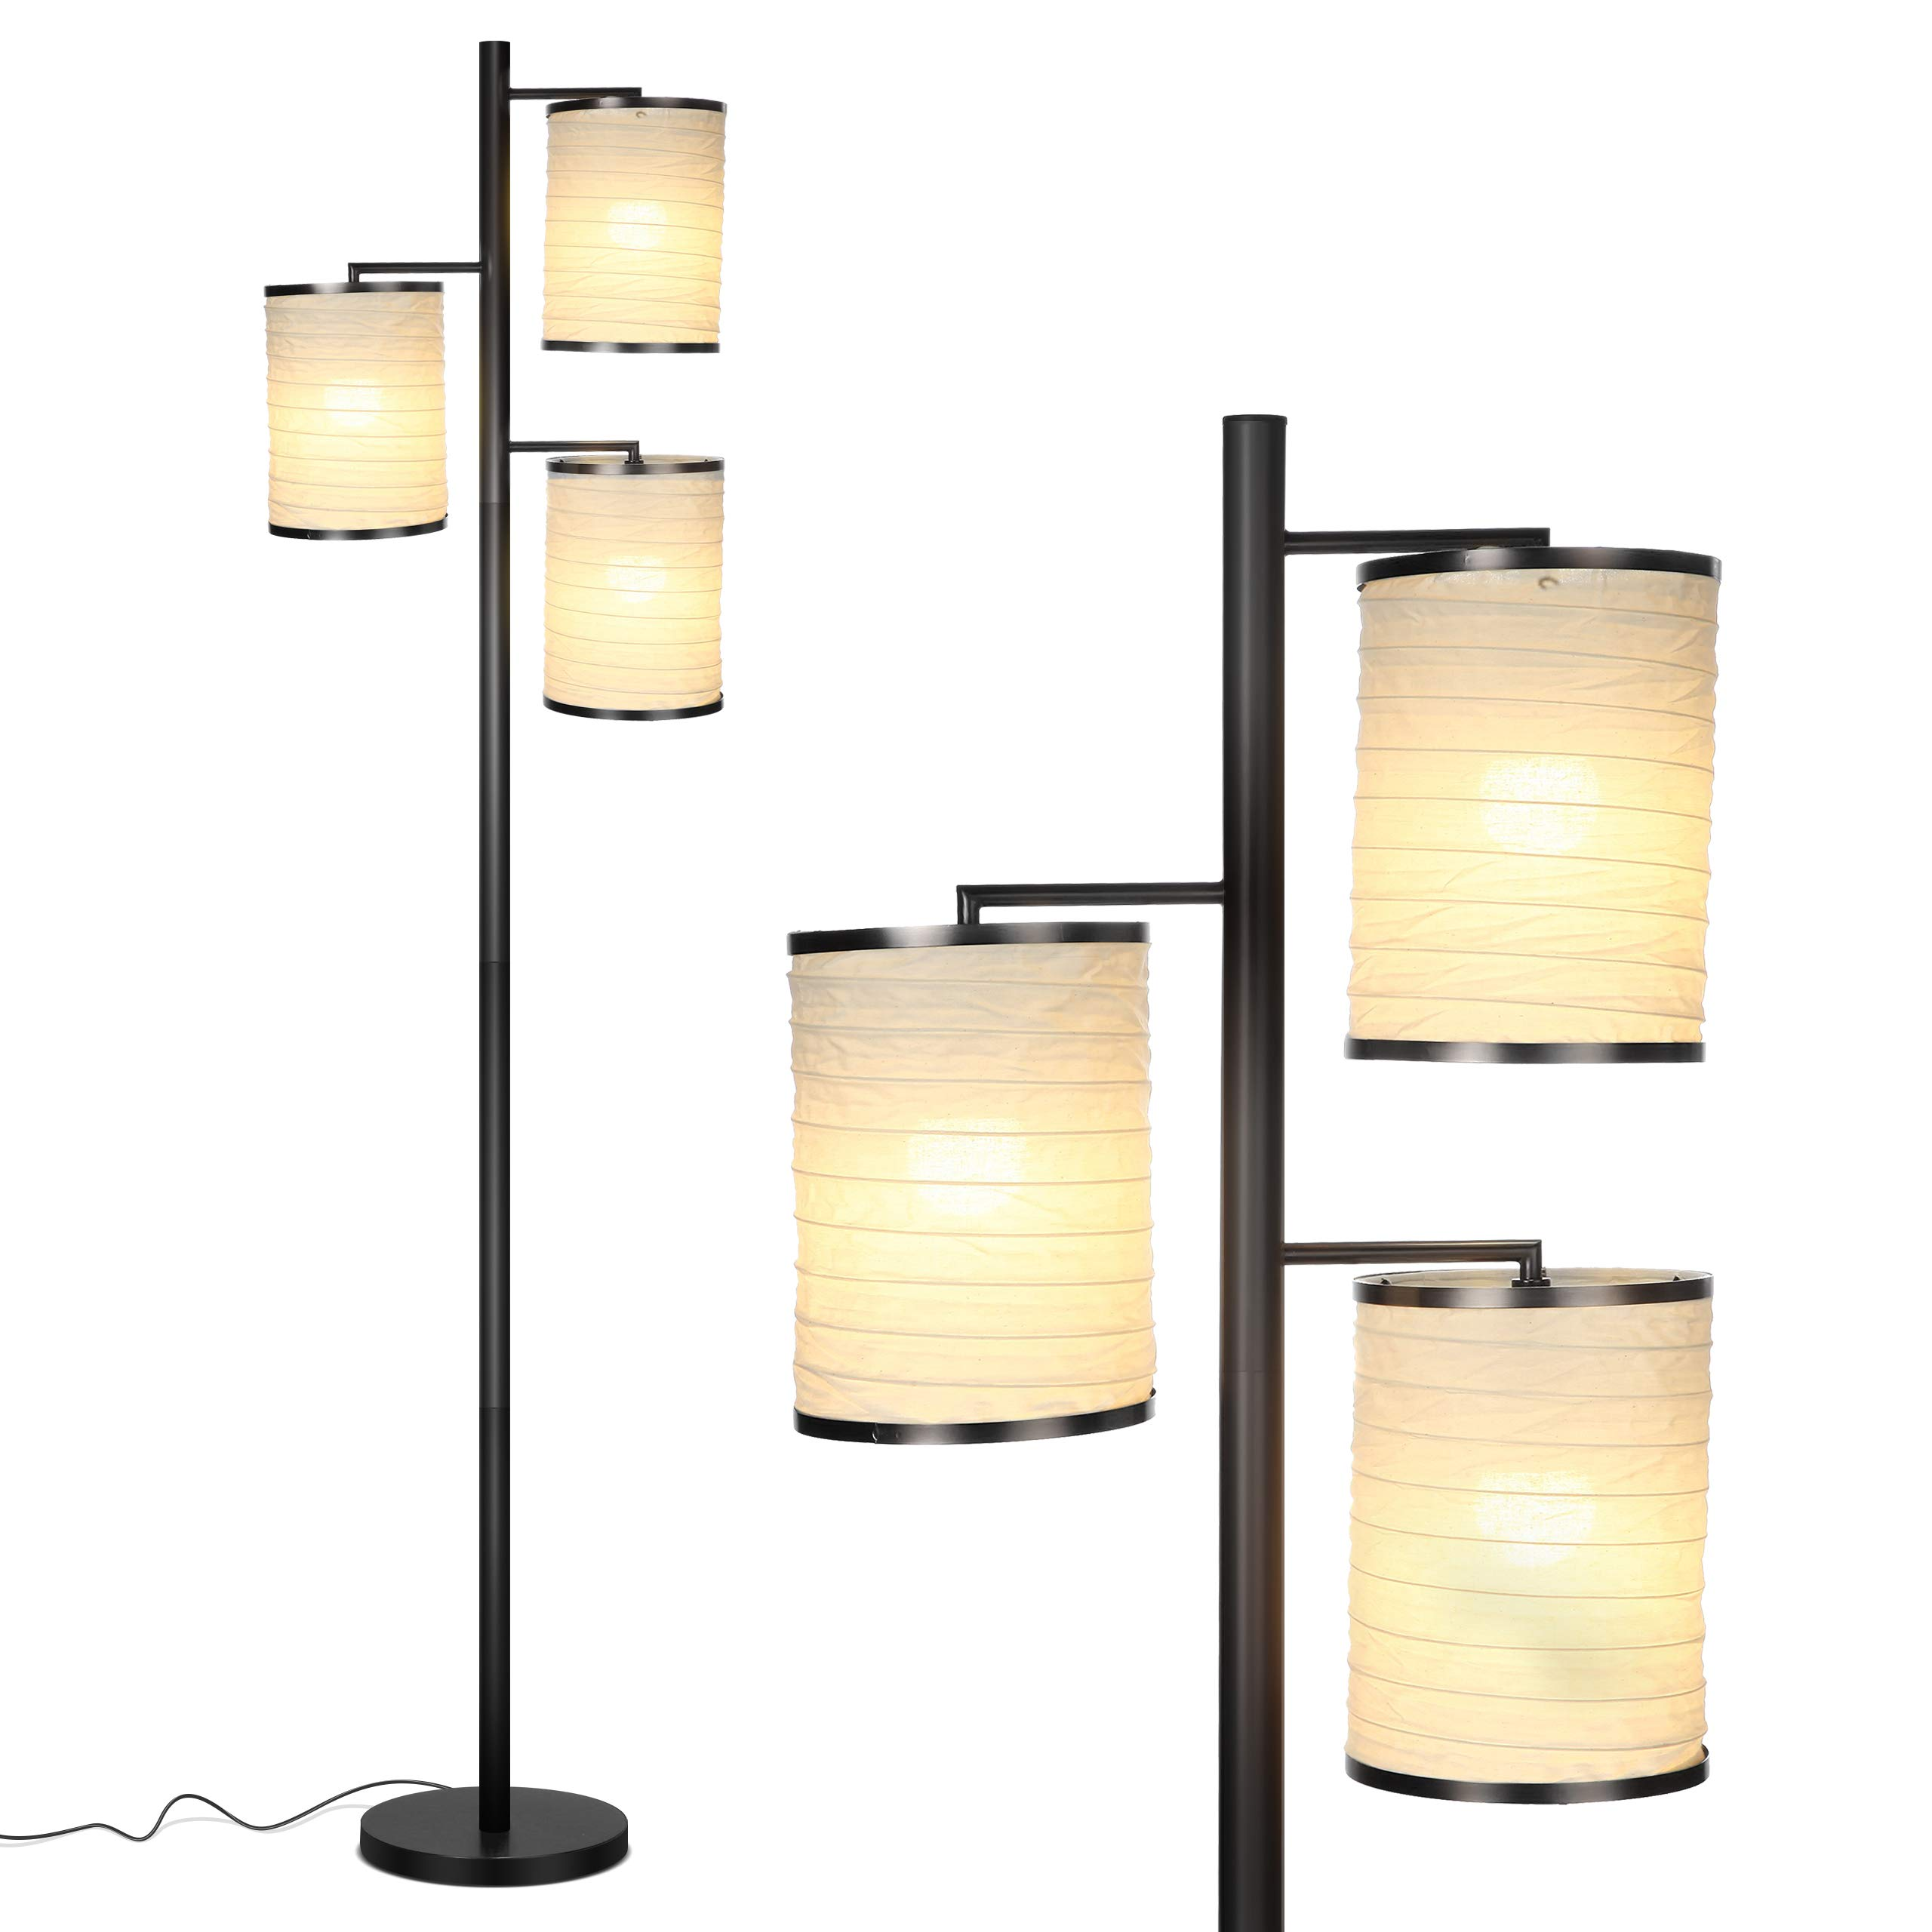 Brightech Liam - Asian Lantern Shade Tree LED Floor Lamp - Tall Free Standing Pole with 3 LED Light Bulbs - Contemporary Bright Reading Lamp for Living Room, Office - Black by Brightech